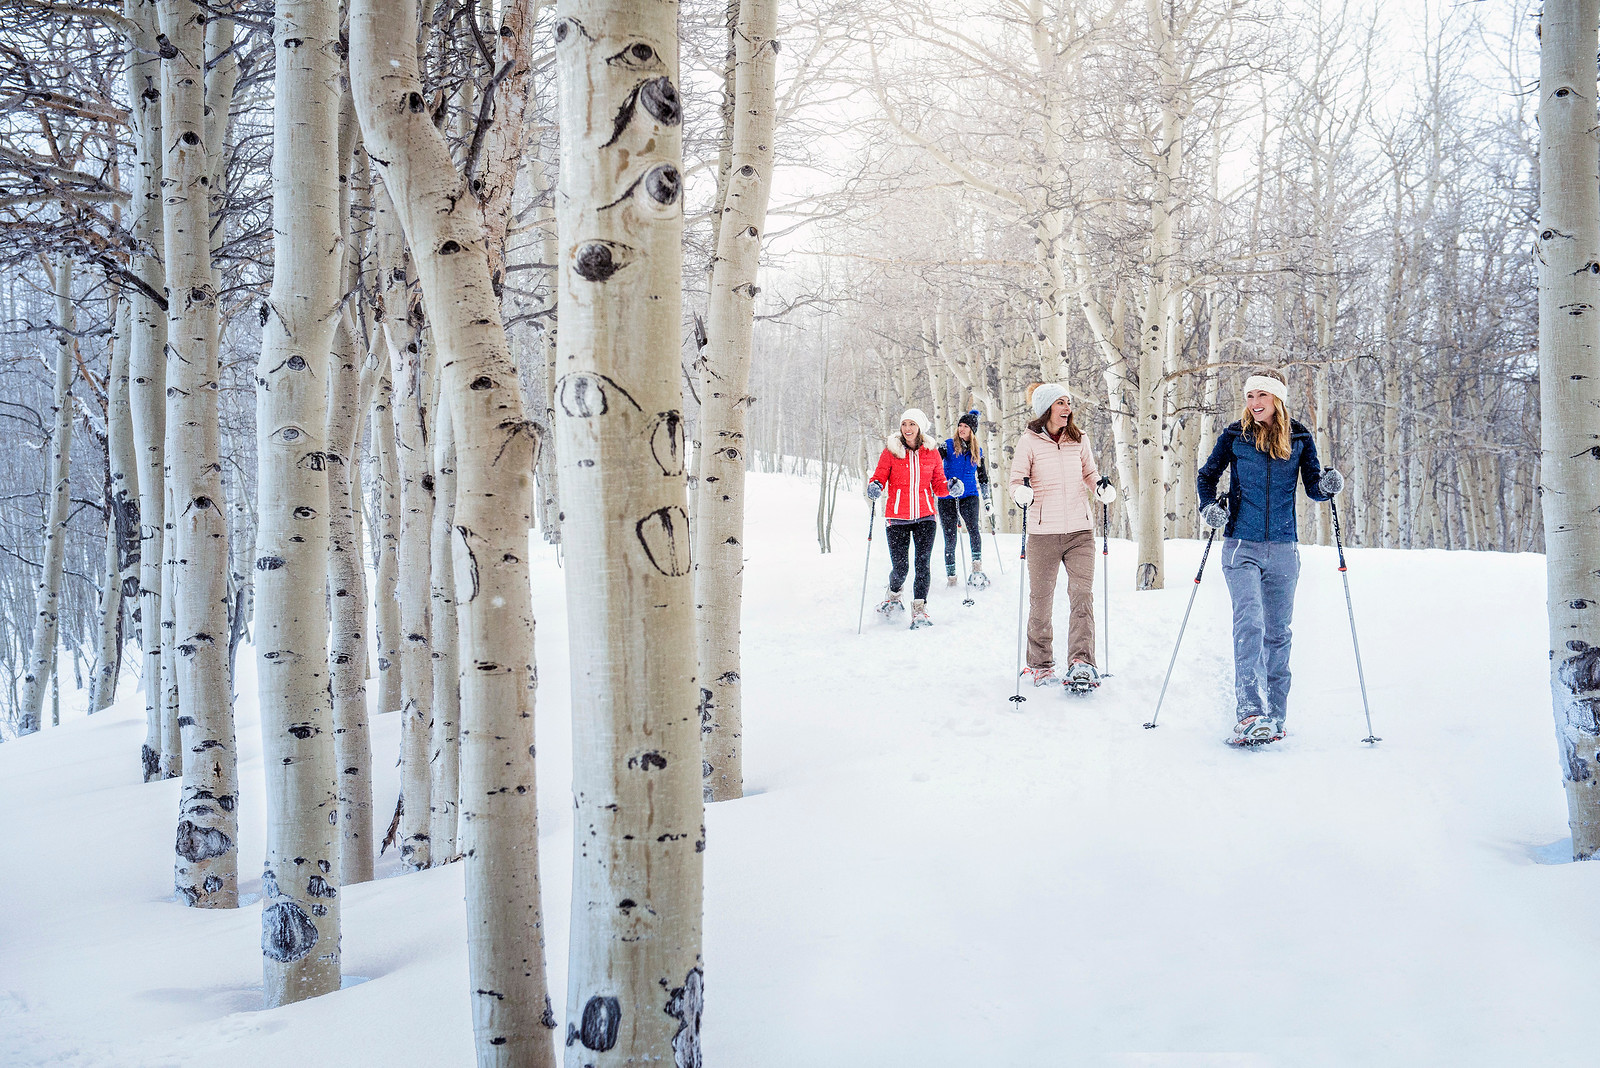 Enjoy snowshoeing and wine at Breckenridge, a Vail Resort.